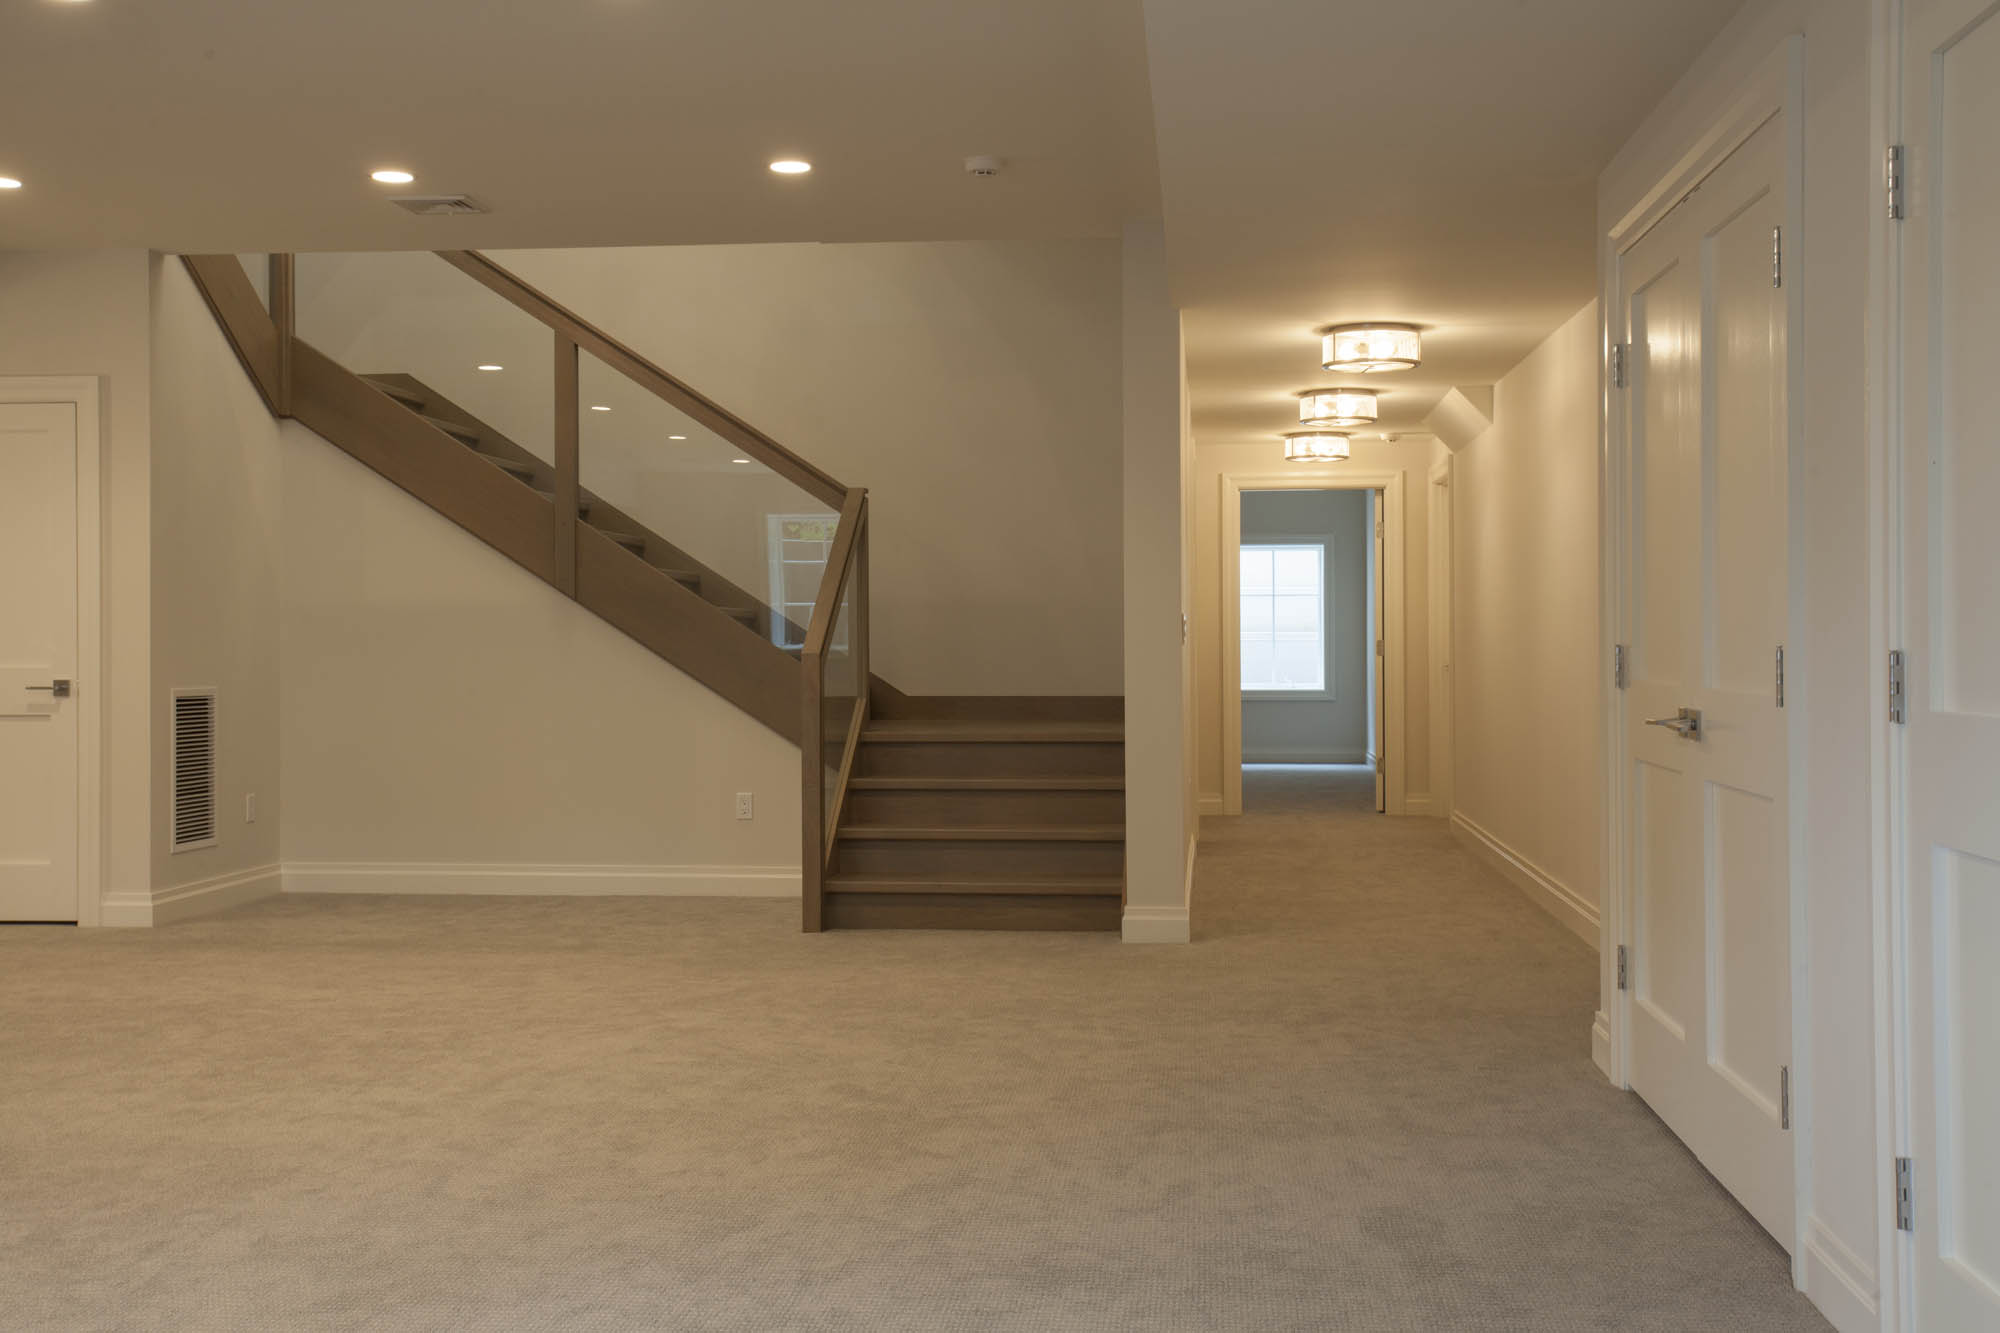 Coyle modular homes new home construction in scarsdale ny for Modular basement flooring